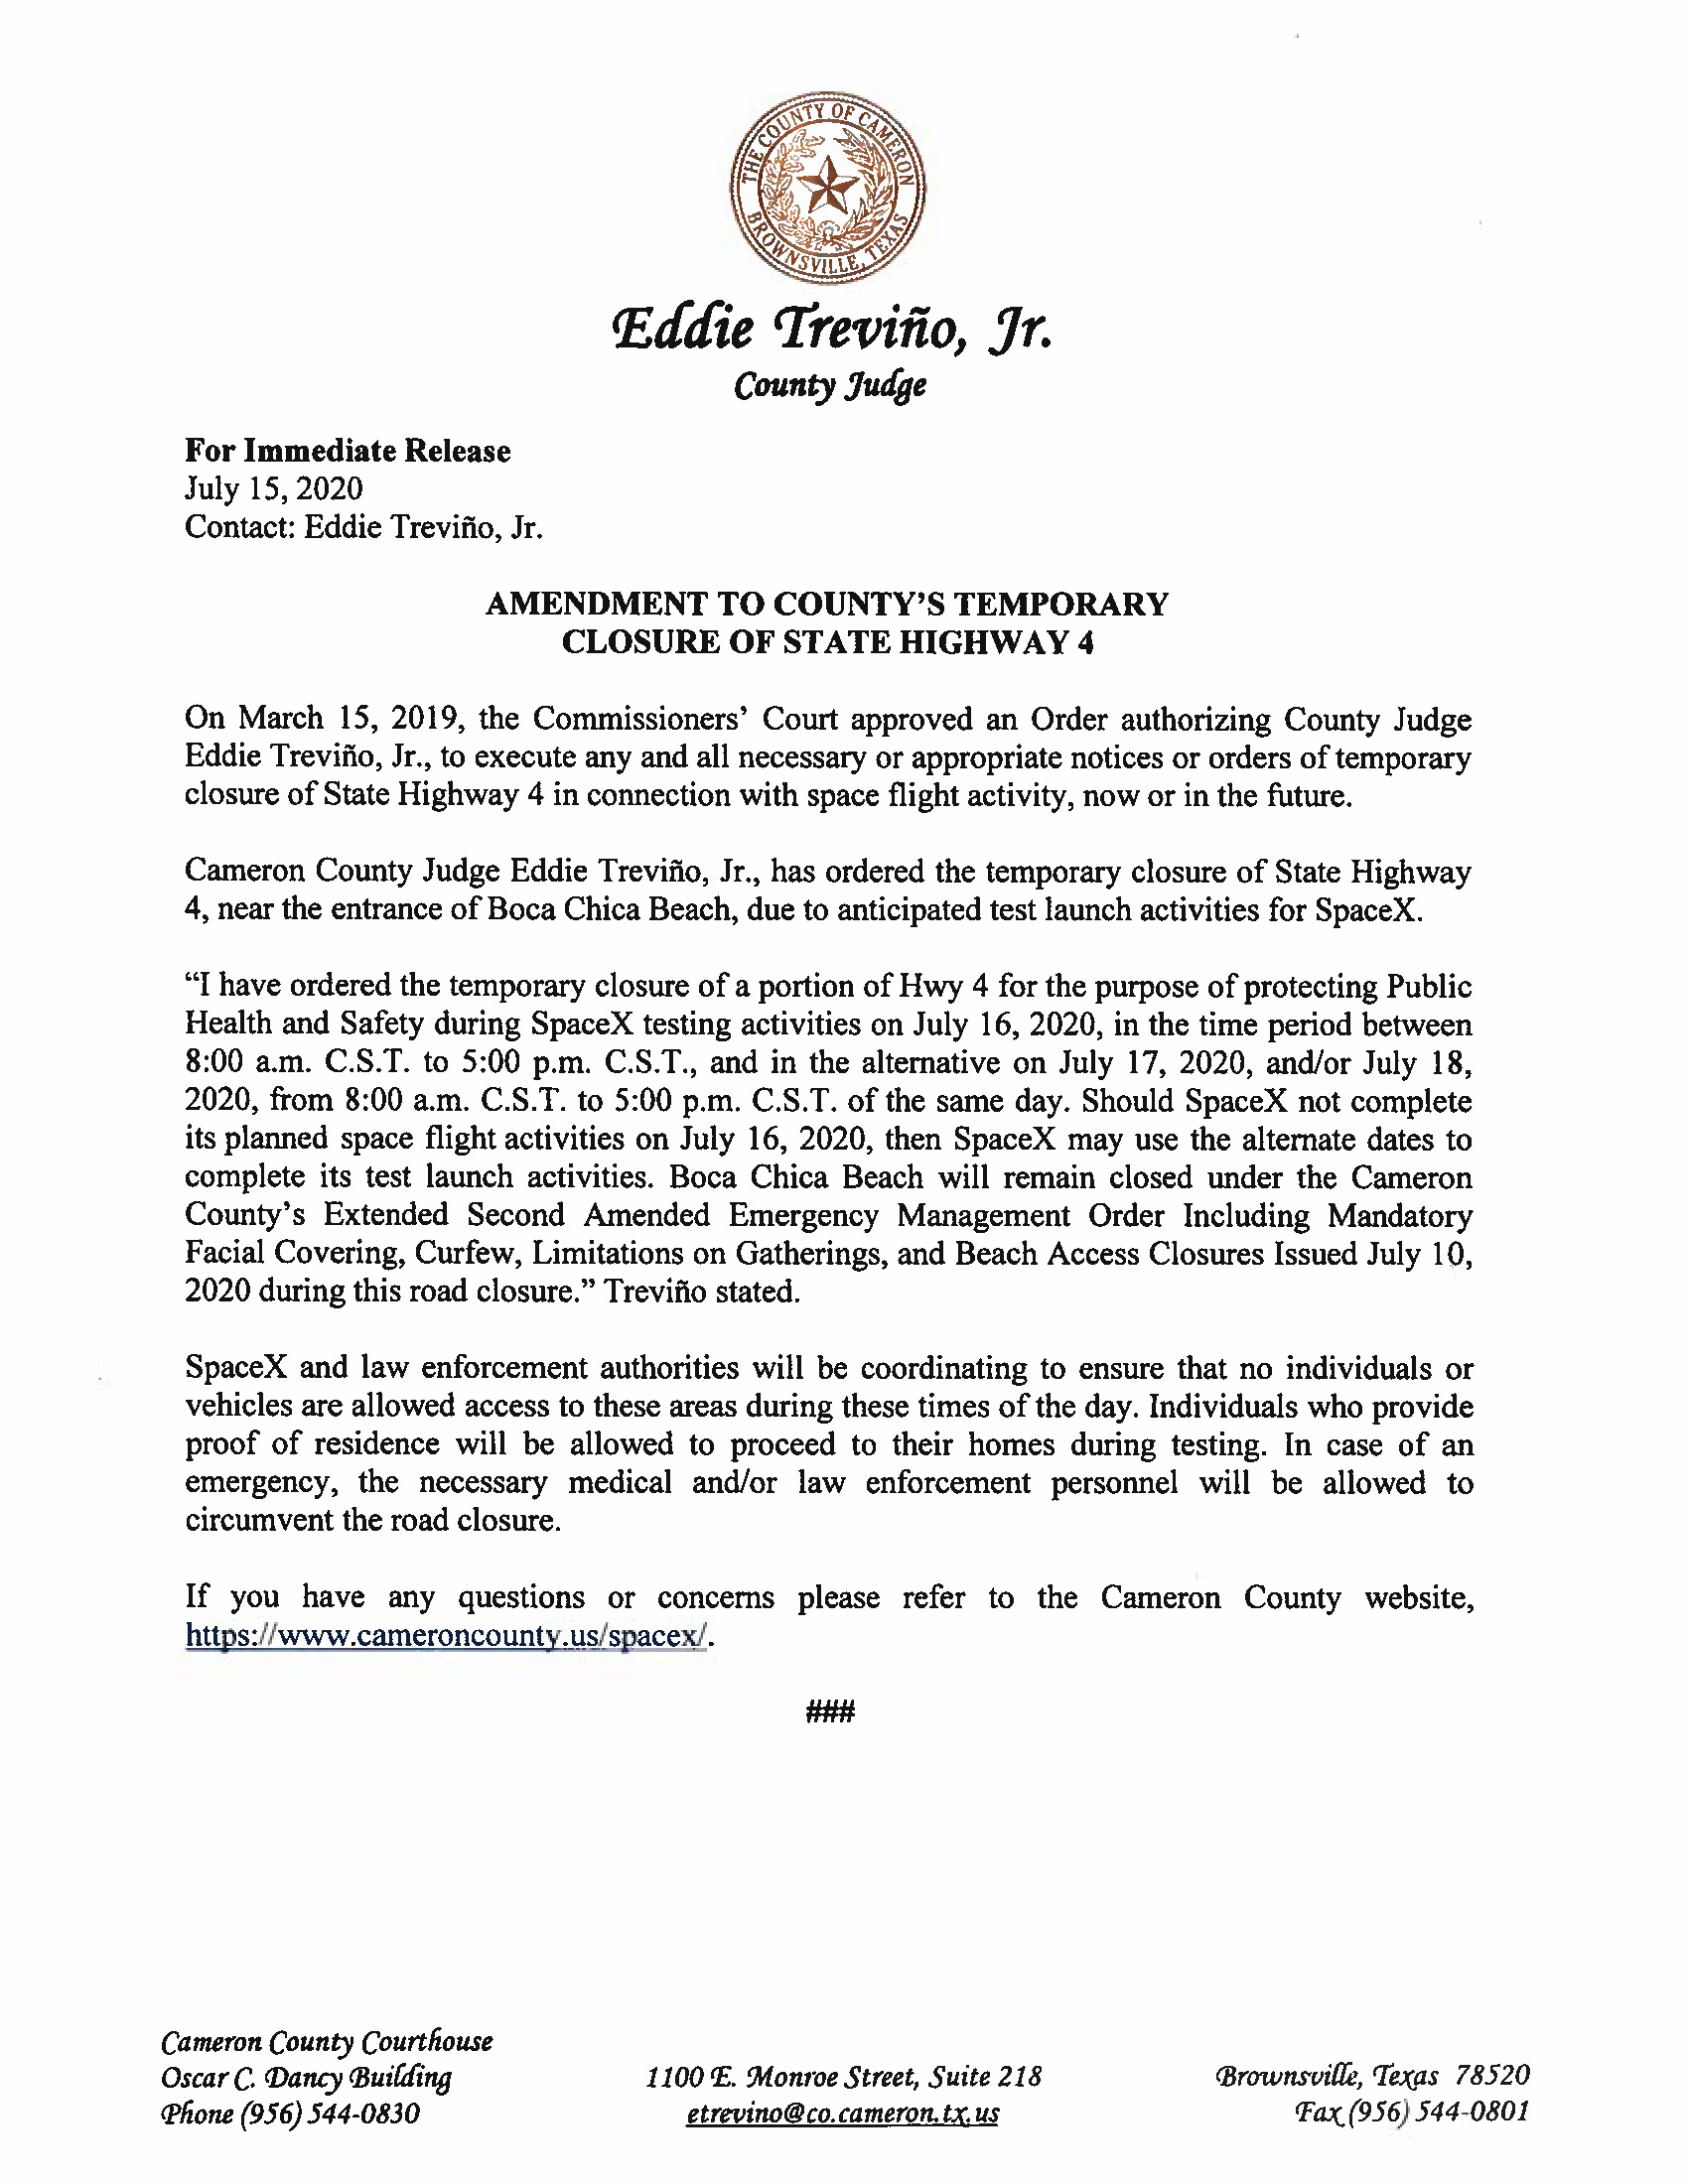 Amended Press Release On Order Of Closure Related To SpaceX Flight.ROAD CLOSURE English Spanish. 07.16.2020.doc Page 1